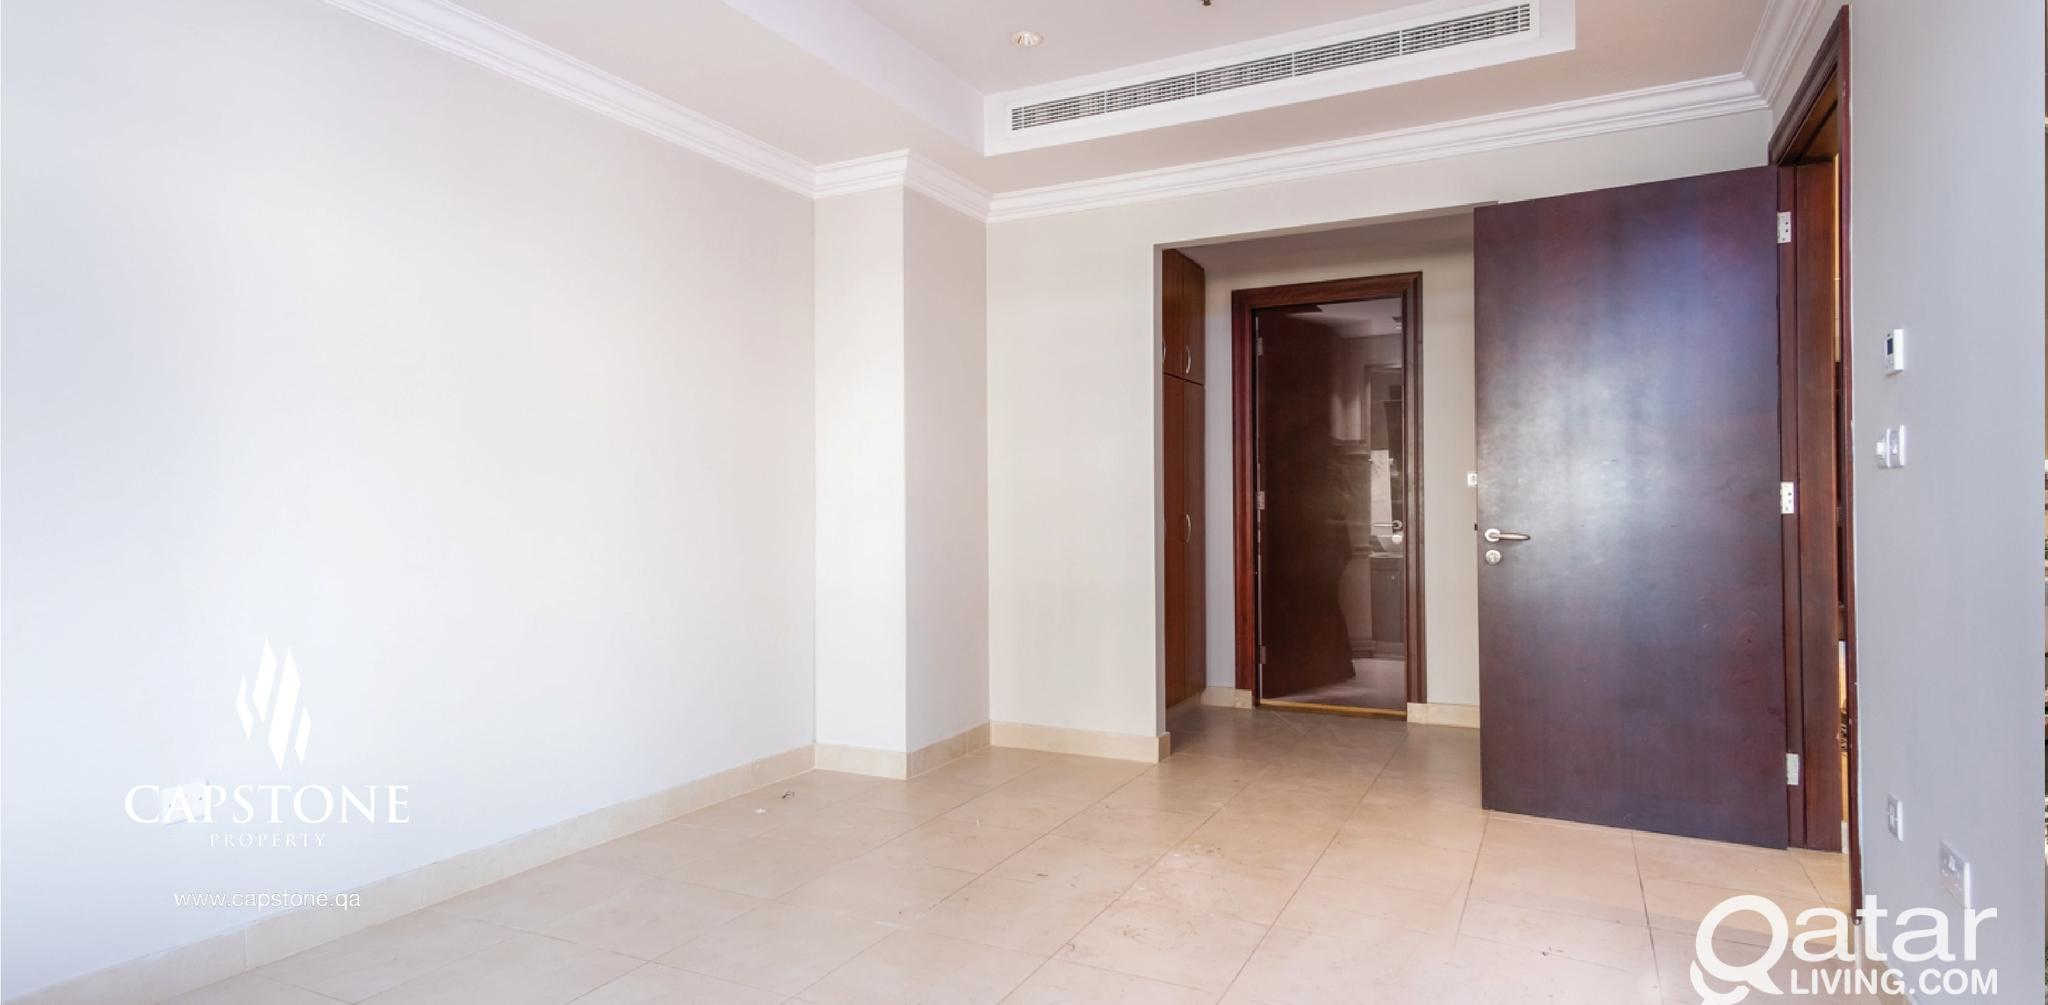 FREE TWO MONTHS RENT! Luxurious Porto Arabia 1BR A